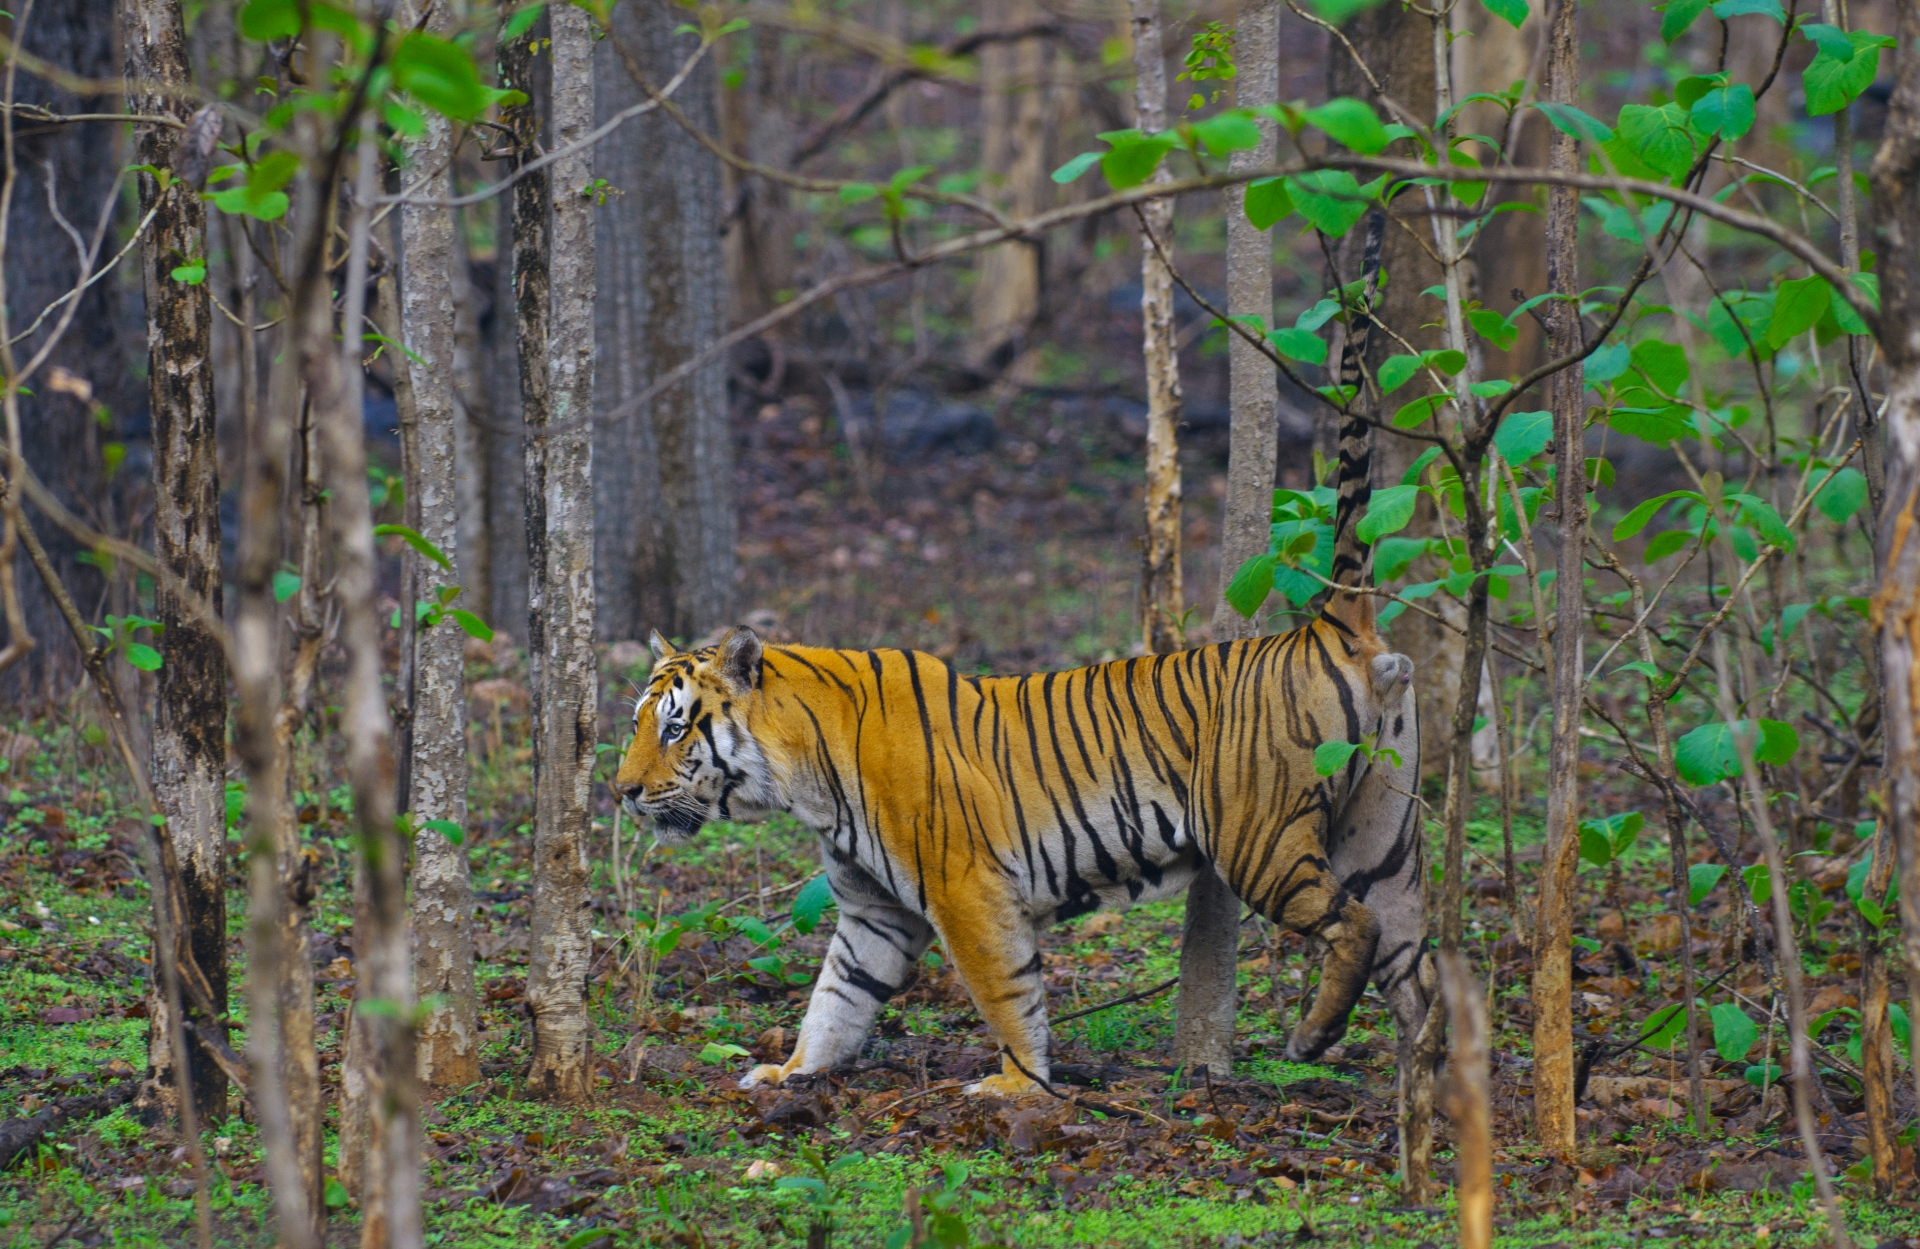 Tigers are territorial creatures, and a single cat's home turf is upwards of 20 sq km. Shrinking forests and sharing the same patch of land leads to territorial wars between the animals, often with grievous outcomes. Photo: Dhritiman Mukherjee